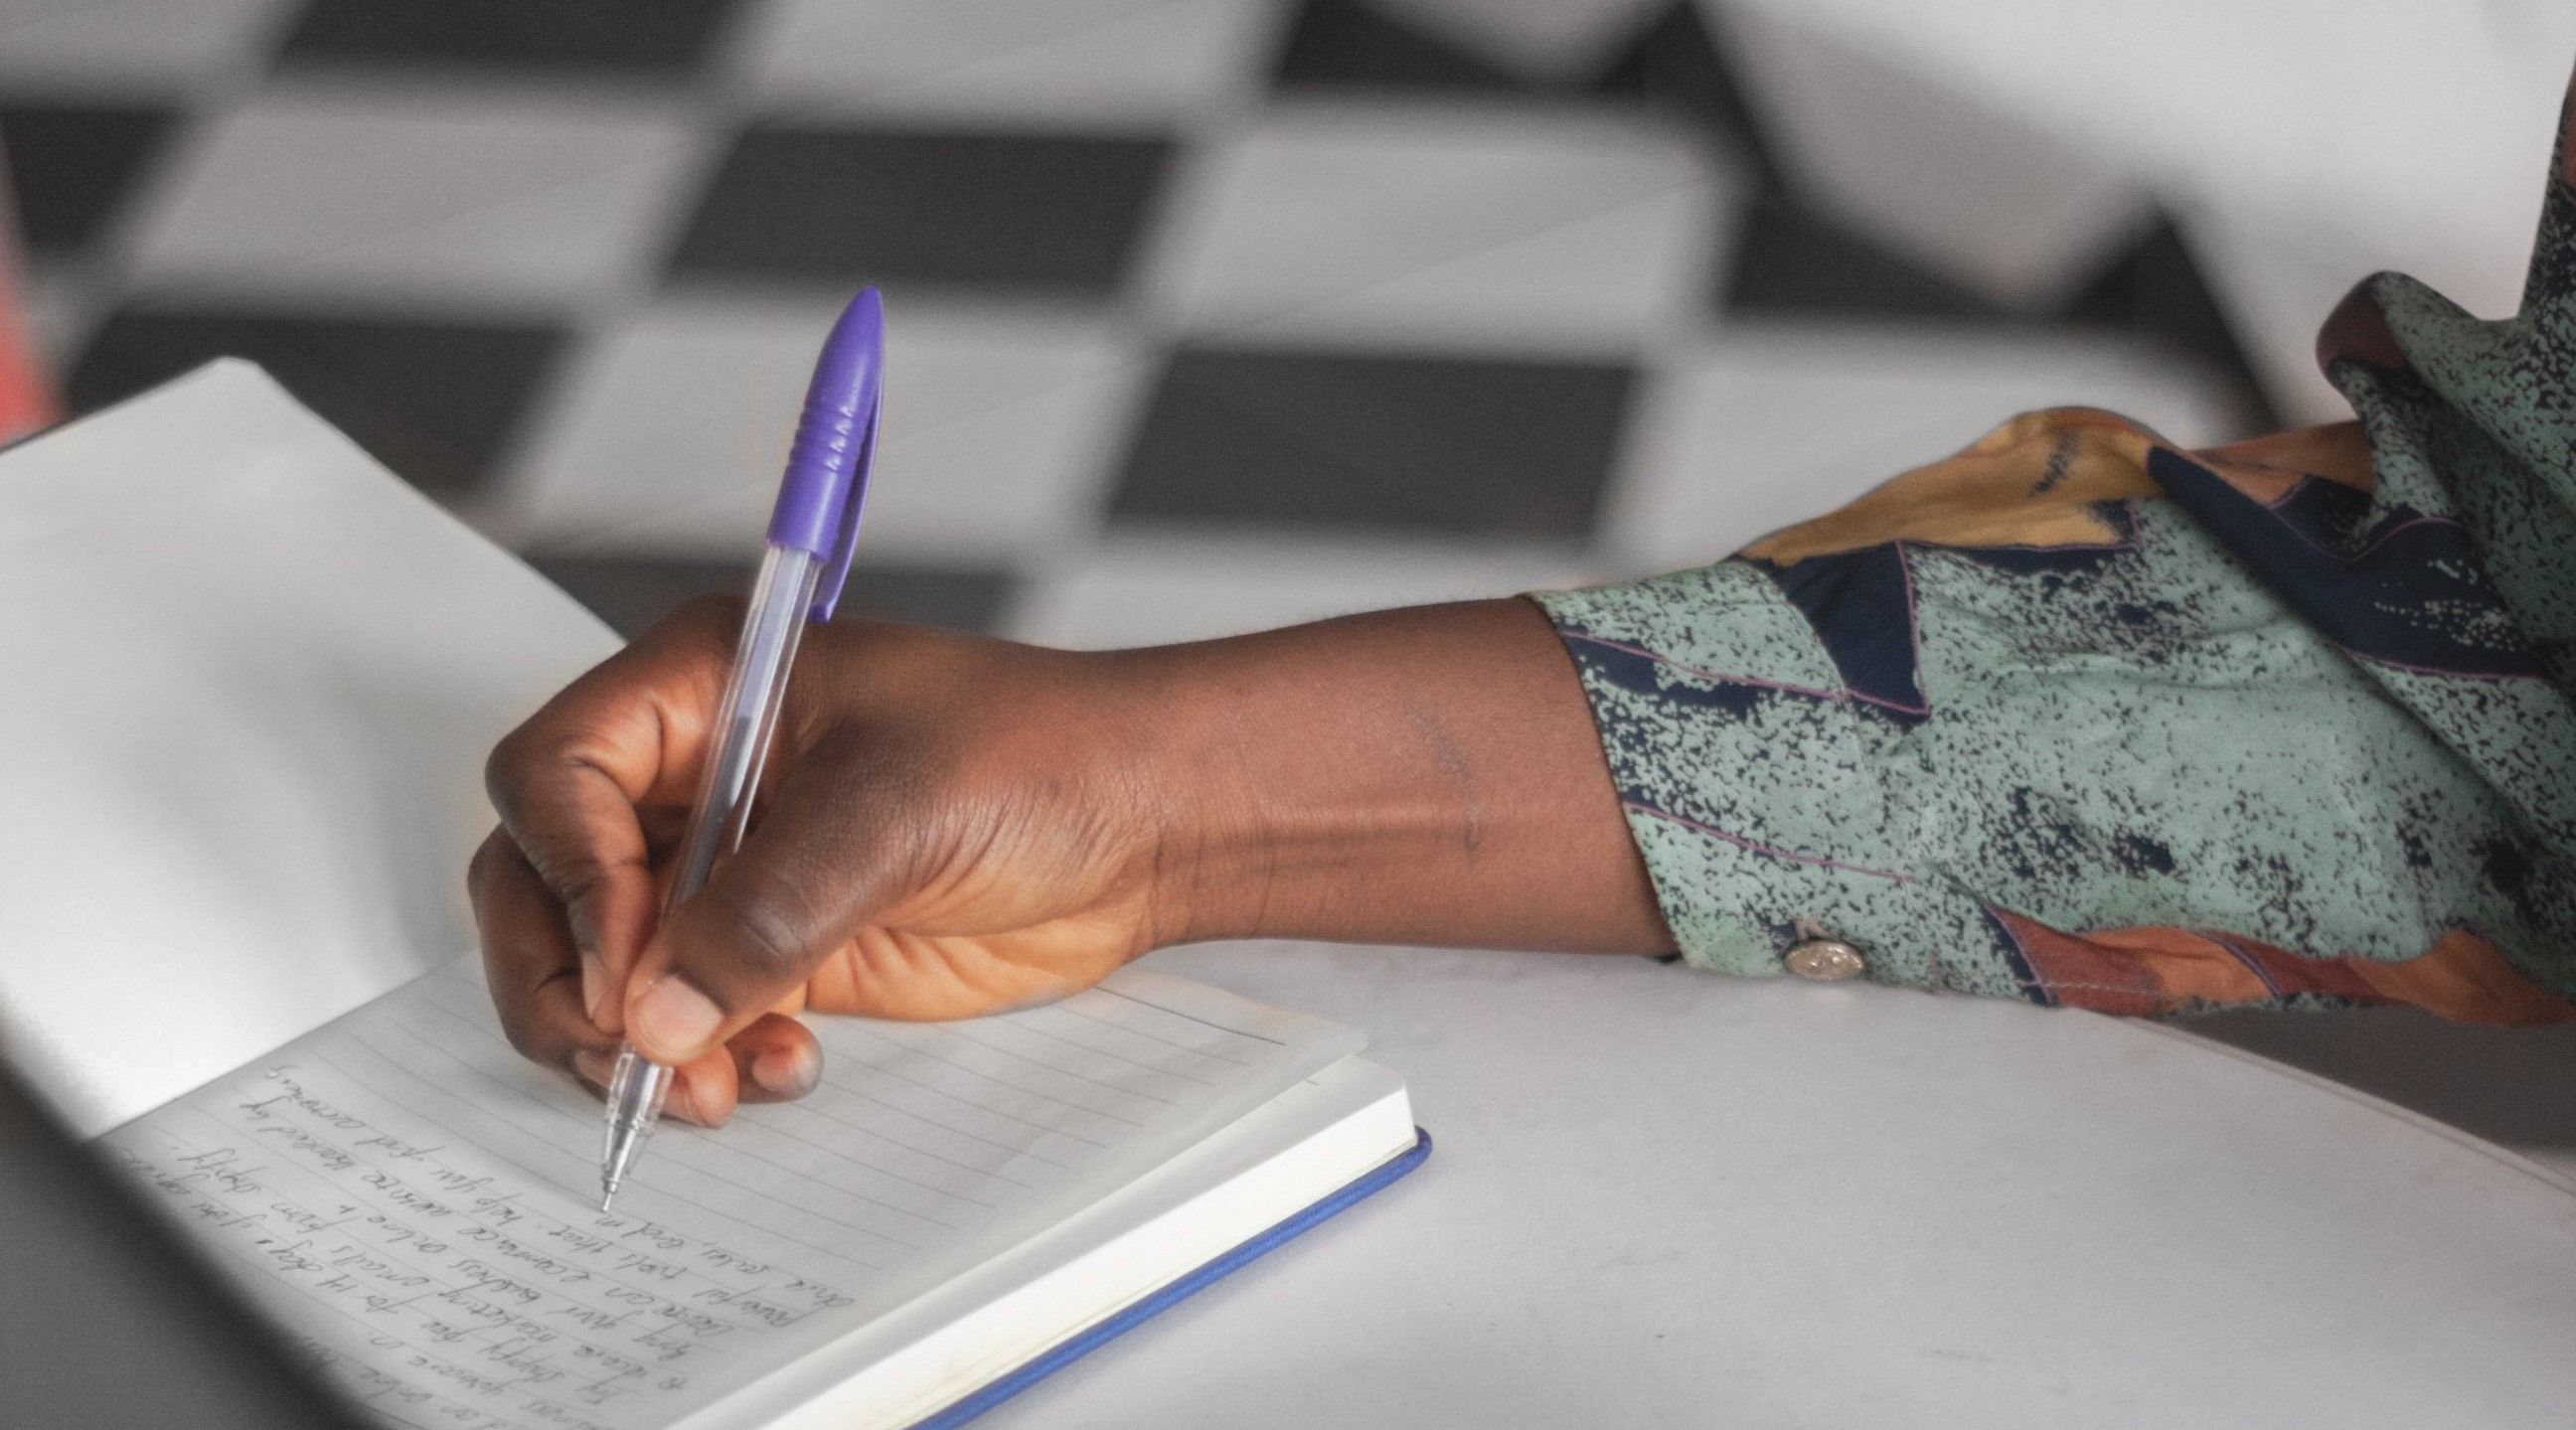 Blog_Lockdown_OneYearOn_hand-writes-in-a-notebook-by-a-laptop-and-cellphone_PhotoCredit_Joshua Bamidele_Burst_Shopify_Banner